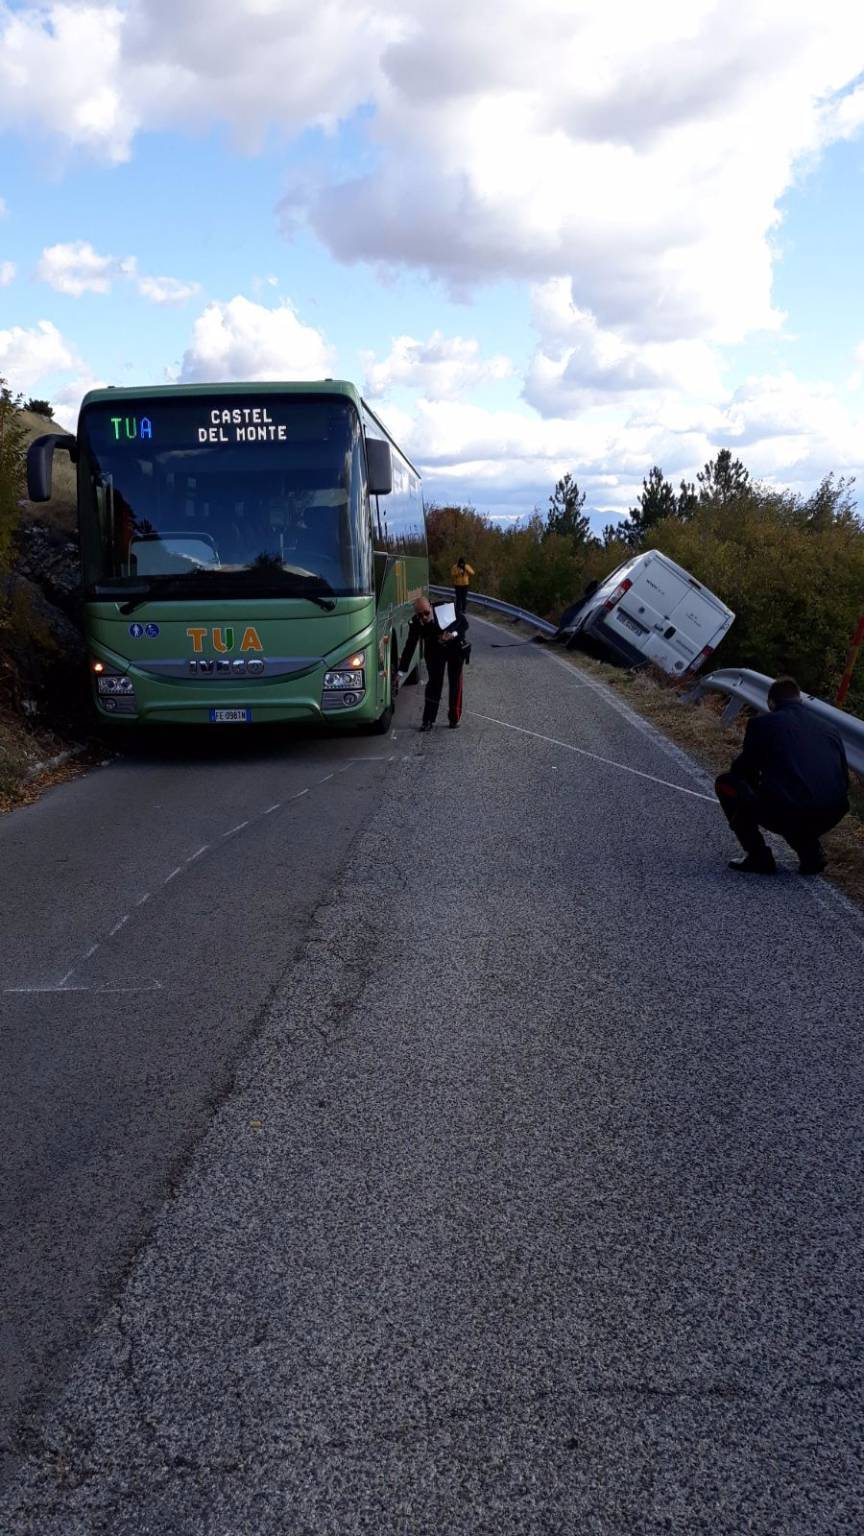 bus tua incidente